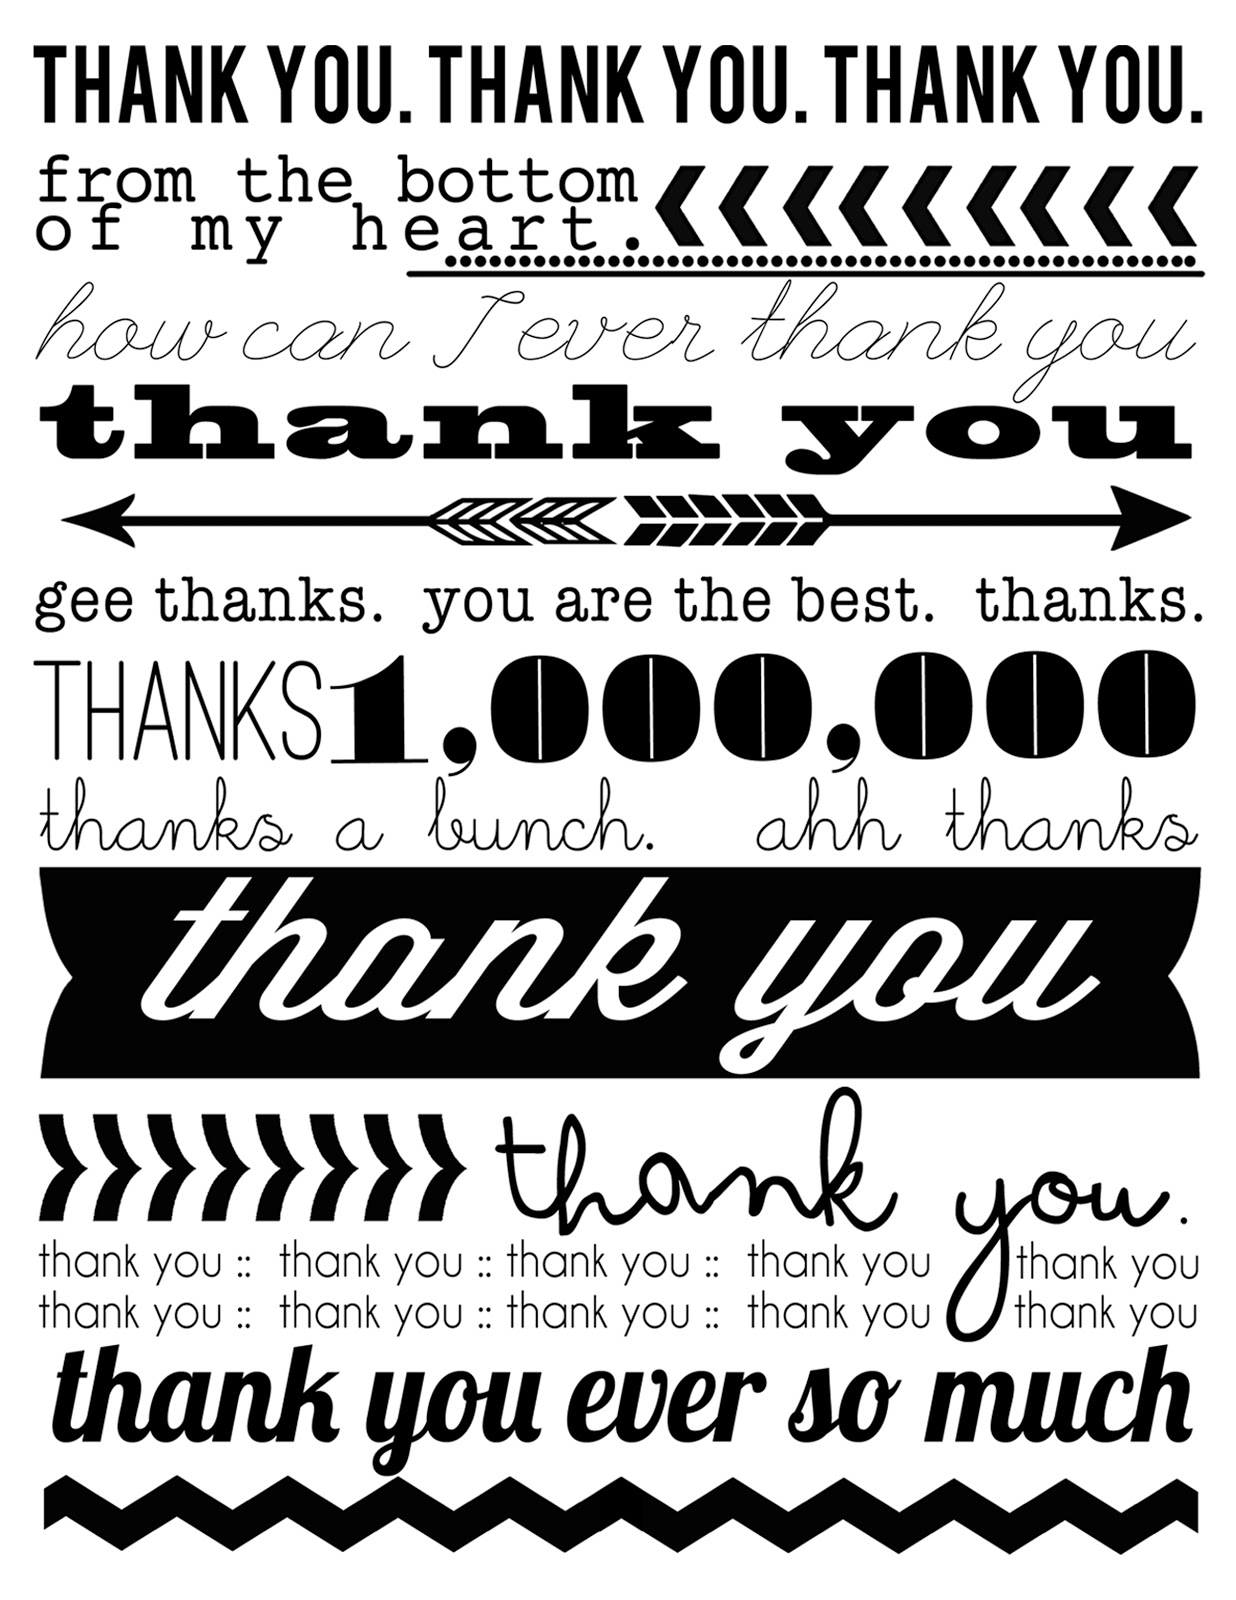 Challenger image with regard to printable thank you card